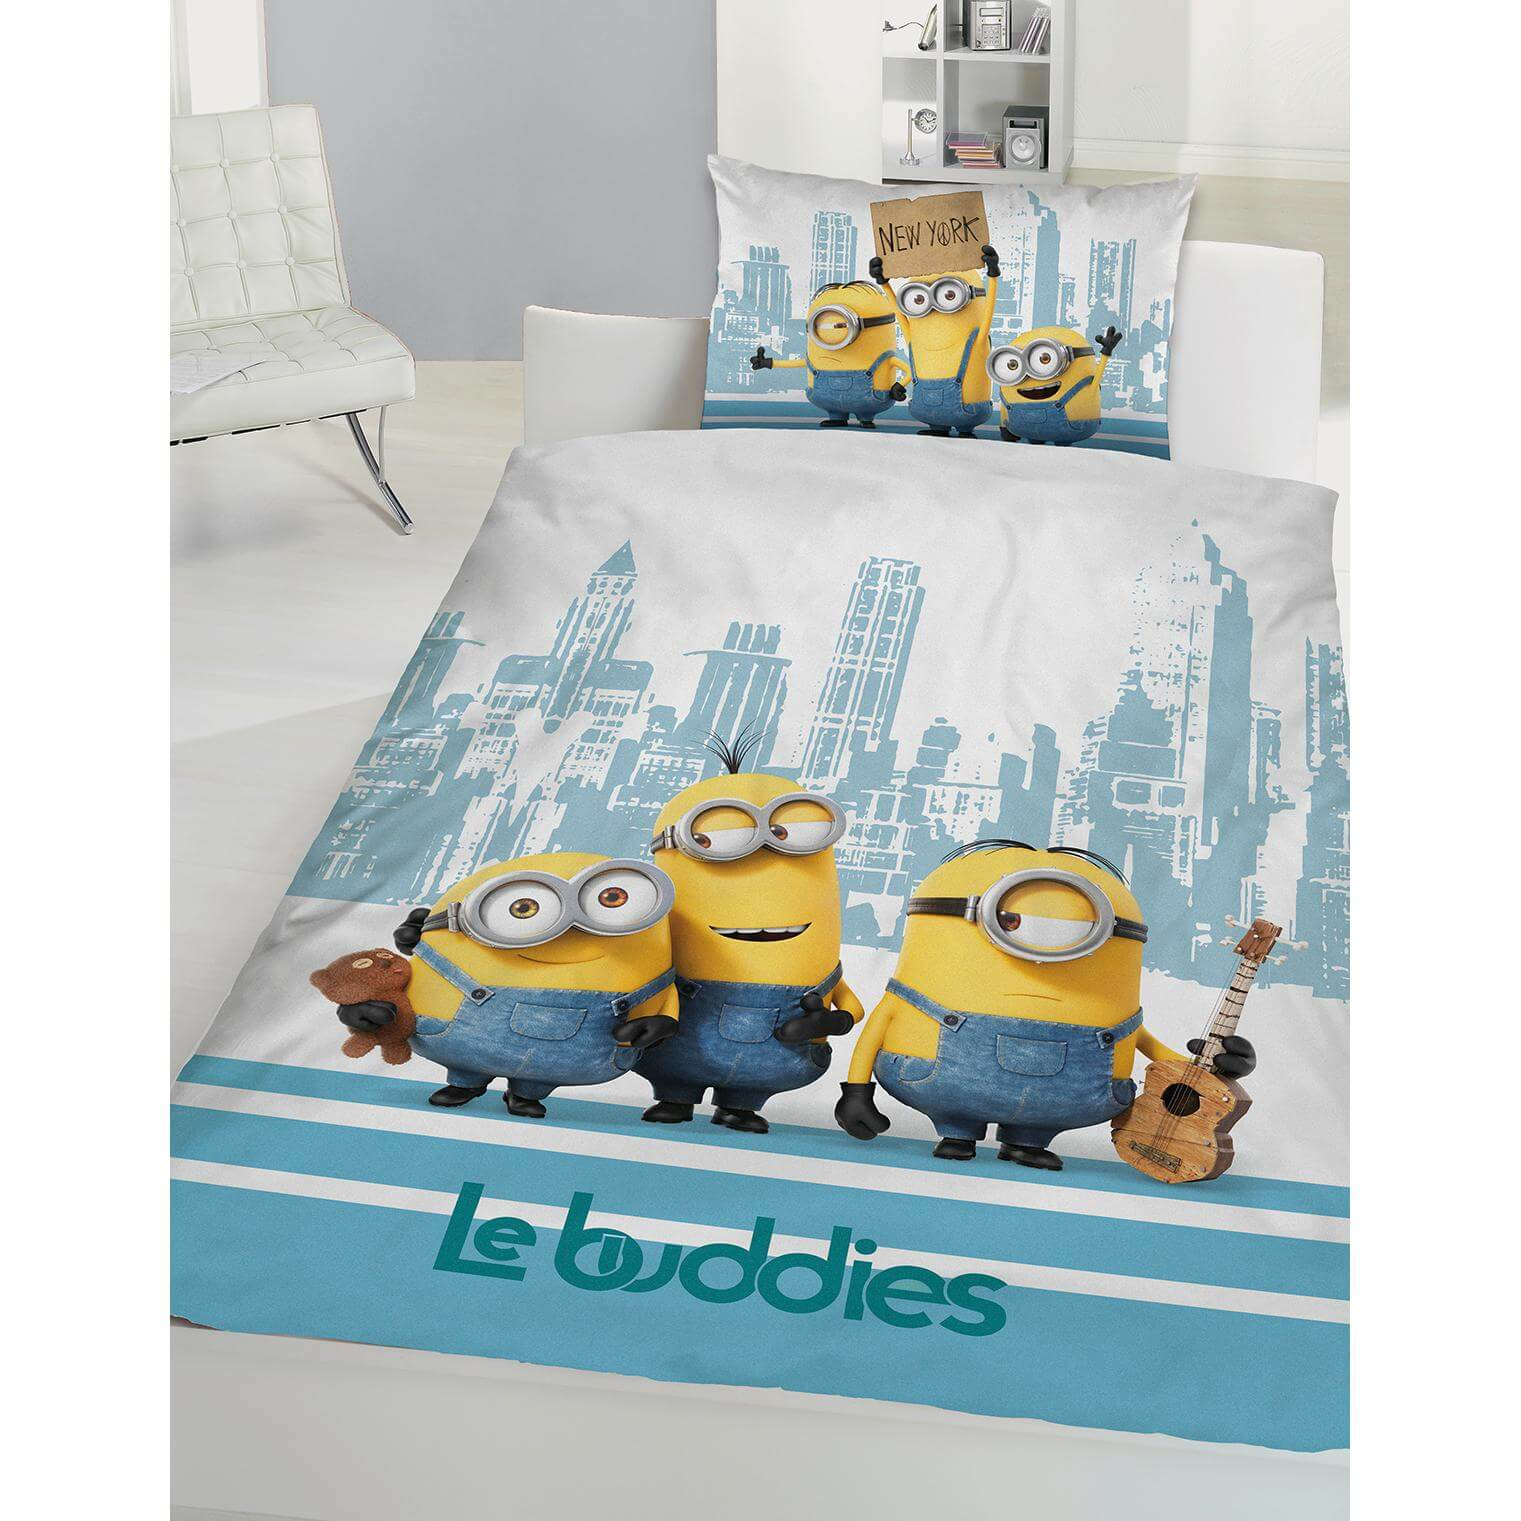 minion bettw sche 200 200 my blog. Black Bedroom Furniture Sets. Home Design Ideas